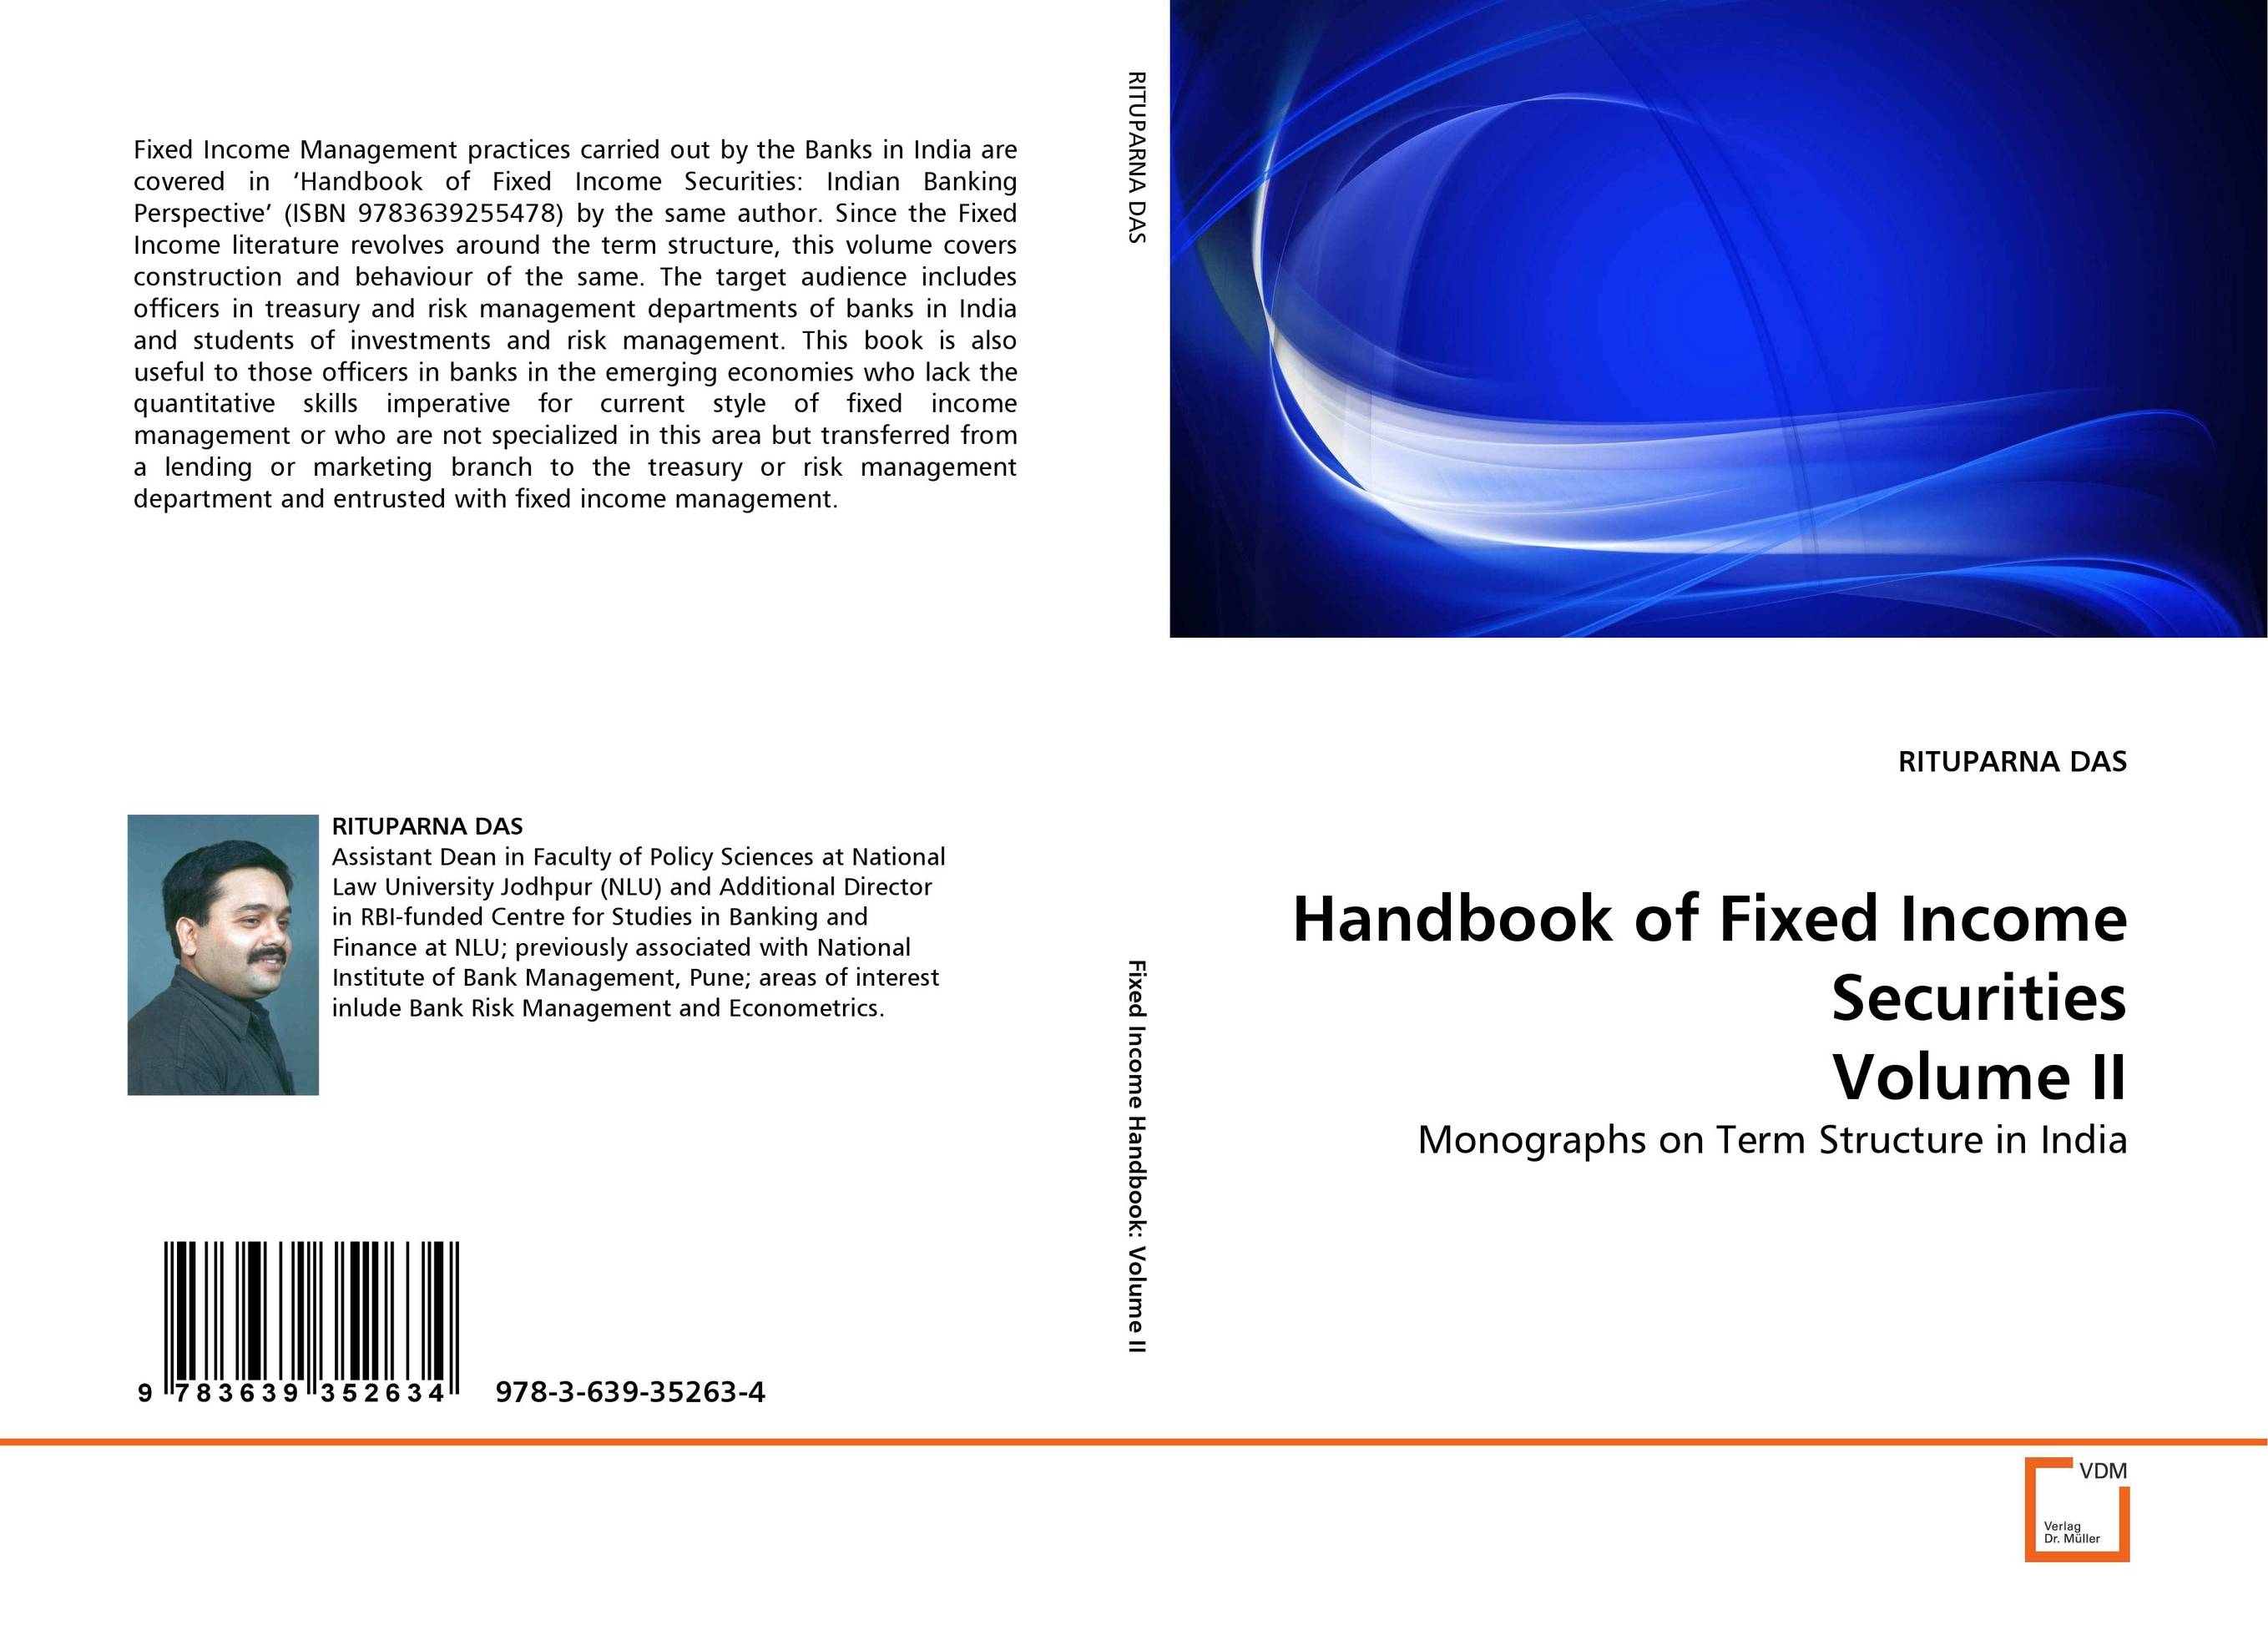 Handbook of Fixed Income Securities Volume II capital structure and risk dynamics among banks